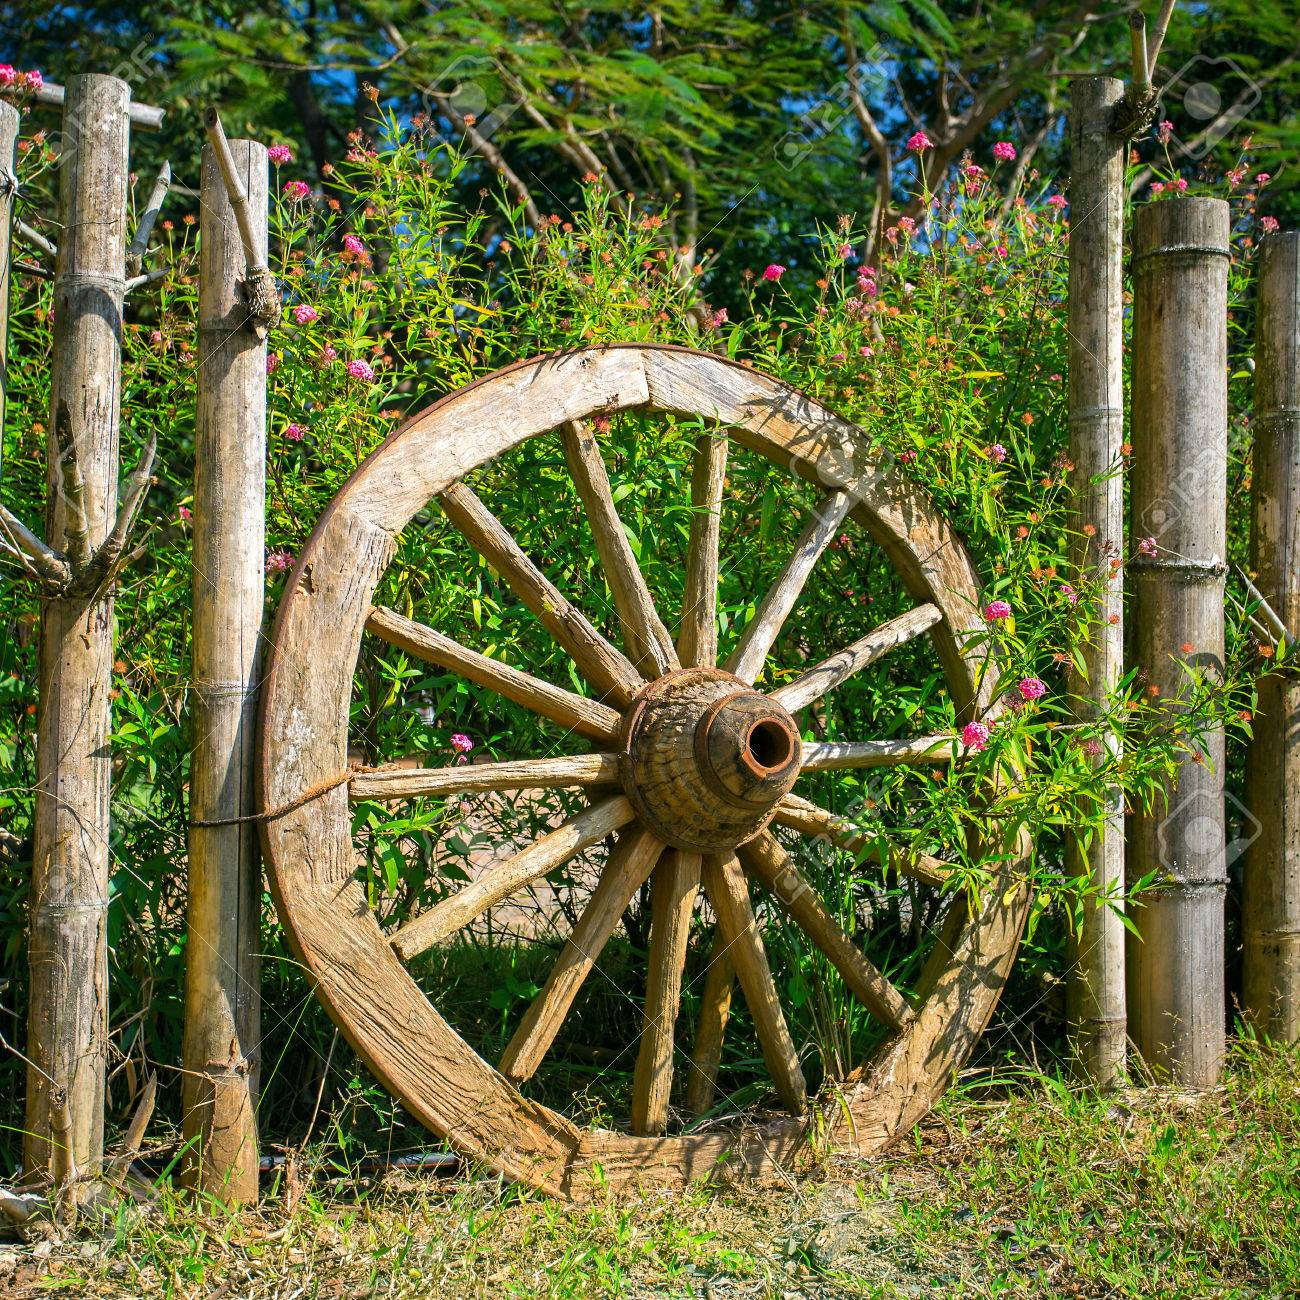 An Old Wagon Wheel Displayed As A Garden Decoration Stock Photo Picture And Royalty Free Image Image 36813224